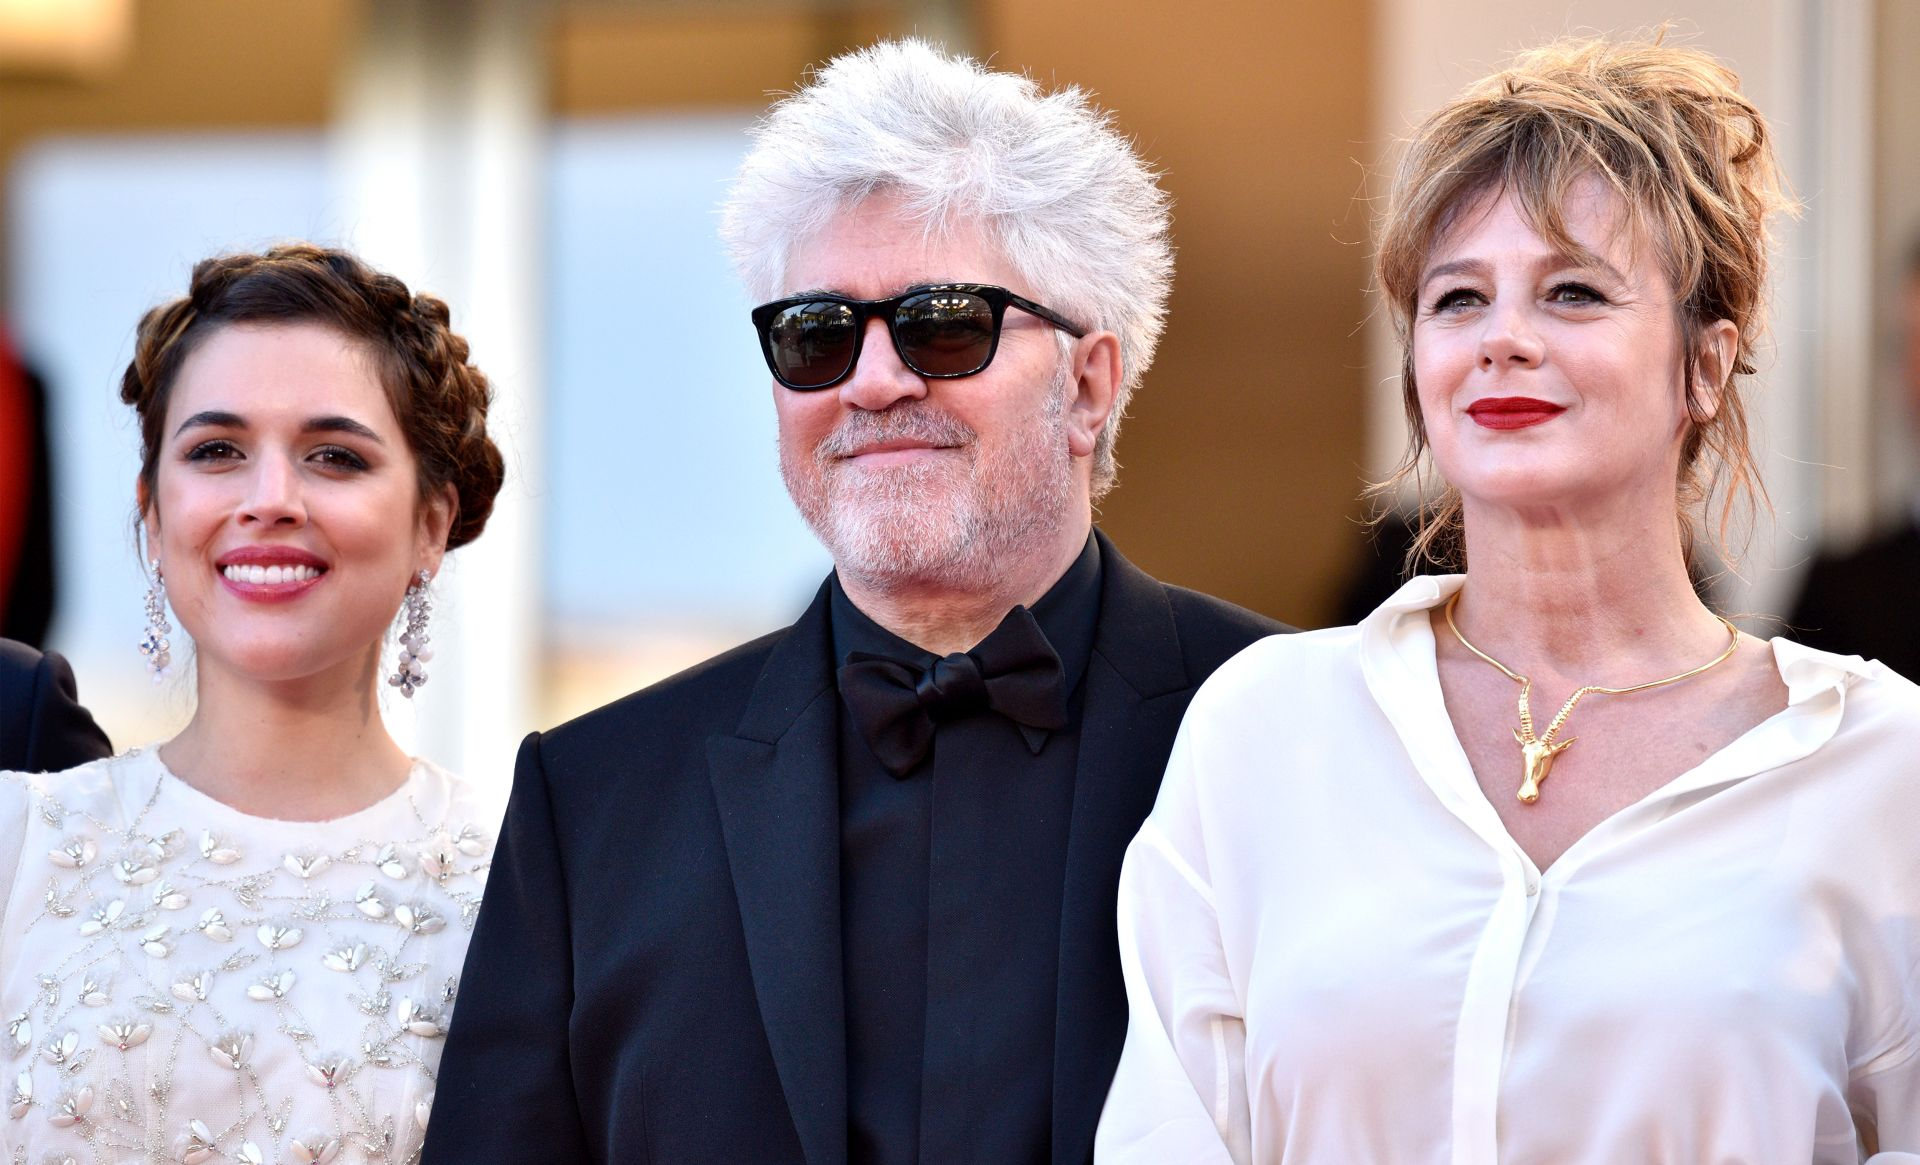 Adriana Ugarte, Pedro Almodovar i Emma Suarez  (Photo by Clemens Bilan/Getty Images)